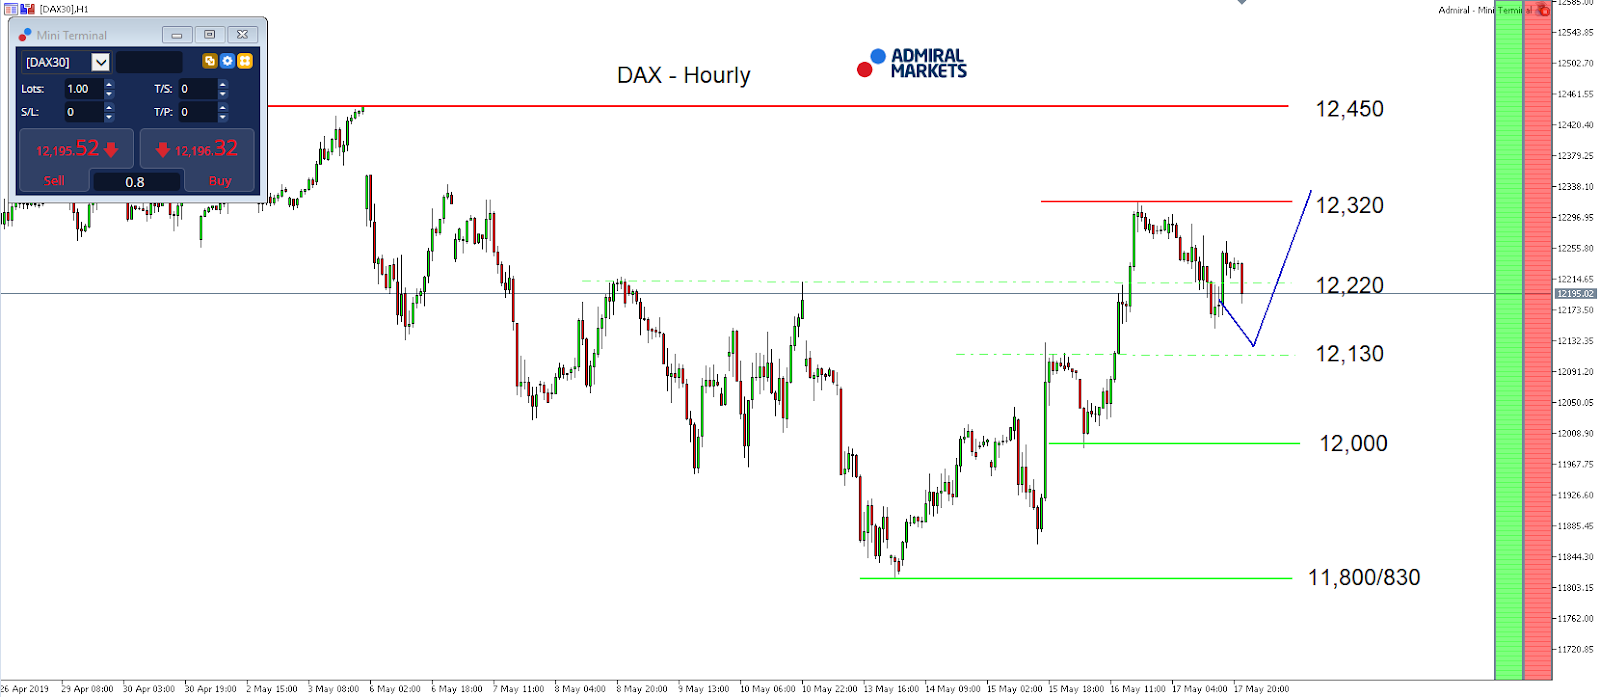 DAX 30 CFD hourly chart